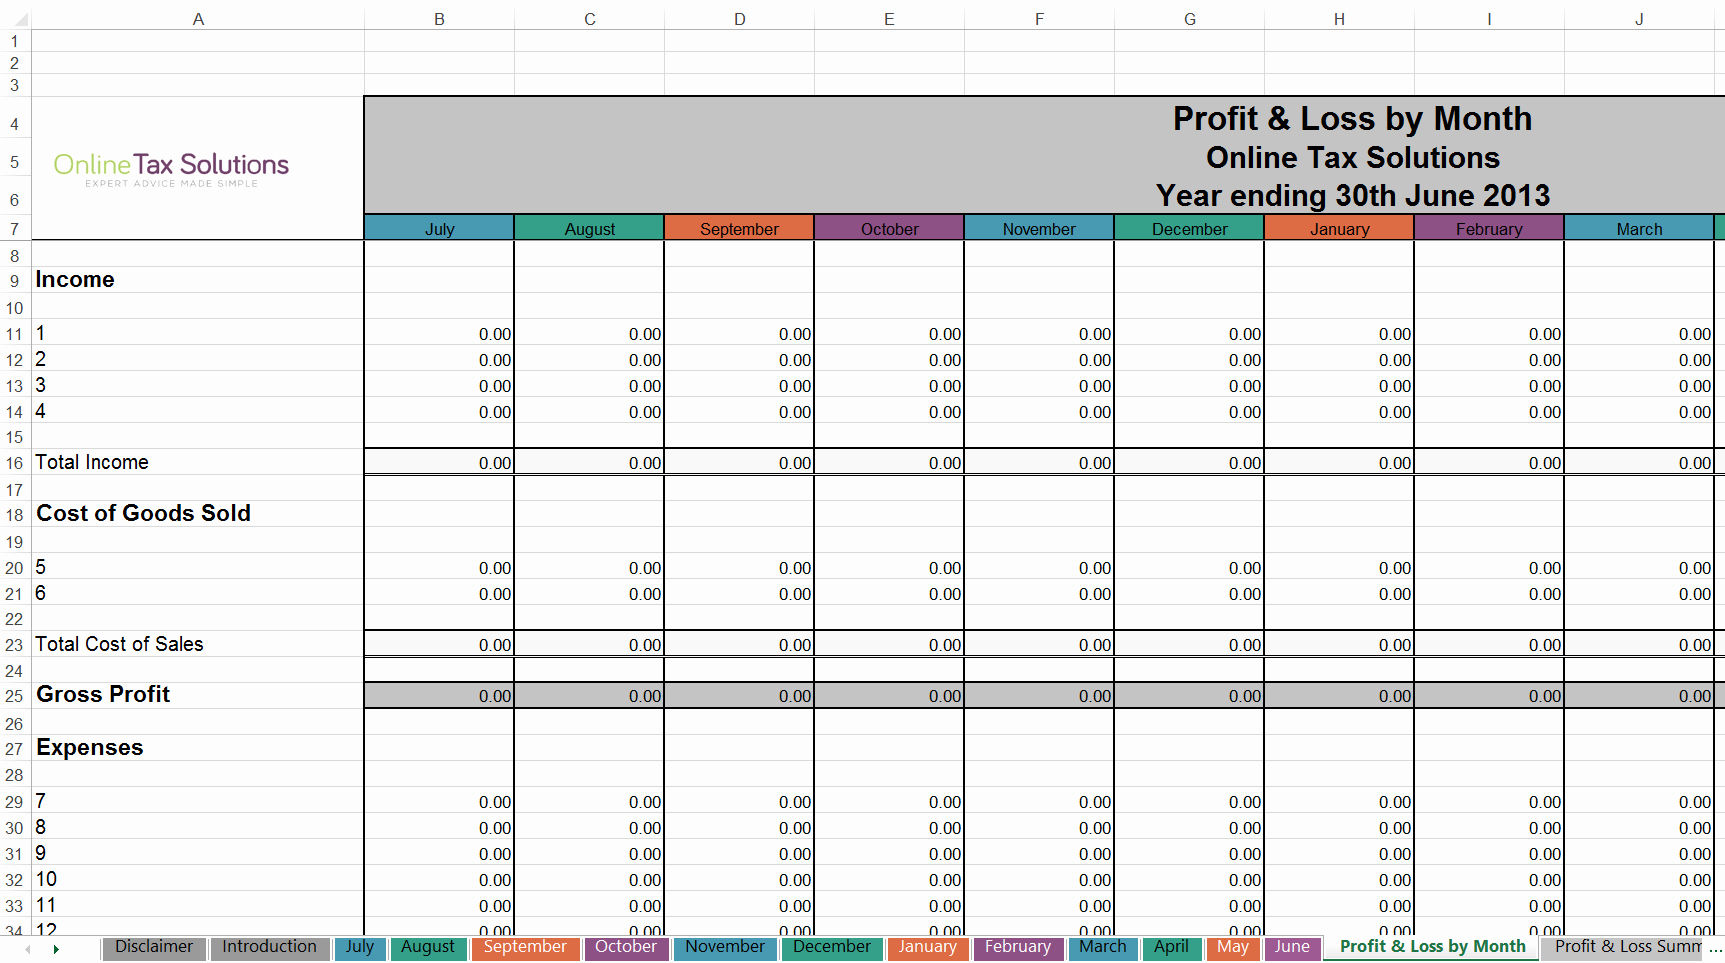 Journal Entry Template Excel New Journal Entry Template In Excel Accounting Journal